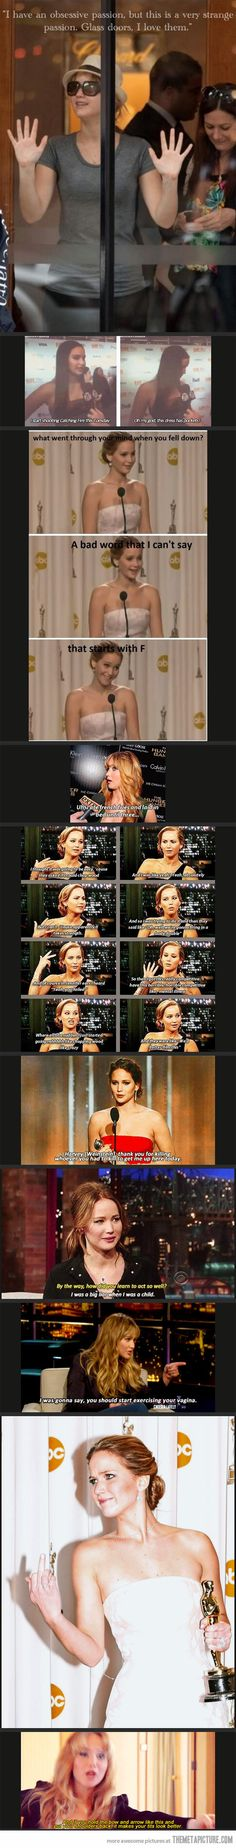 Oh, Jennifer Lawrence. A positive female rolemodel